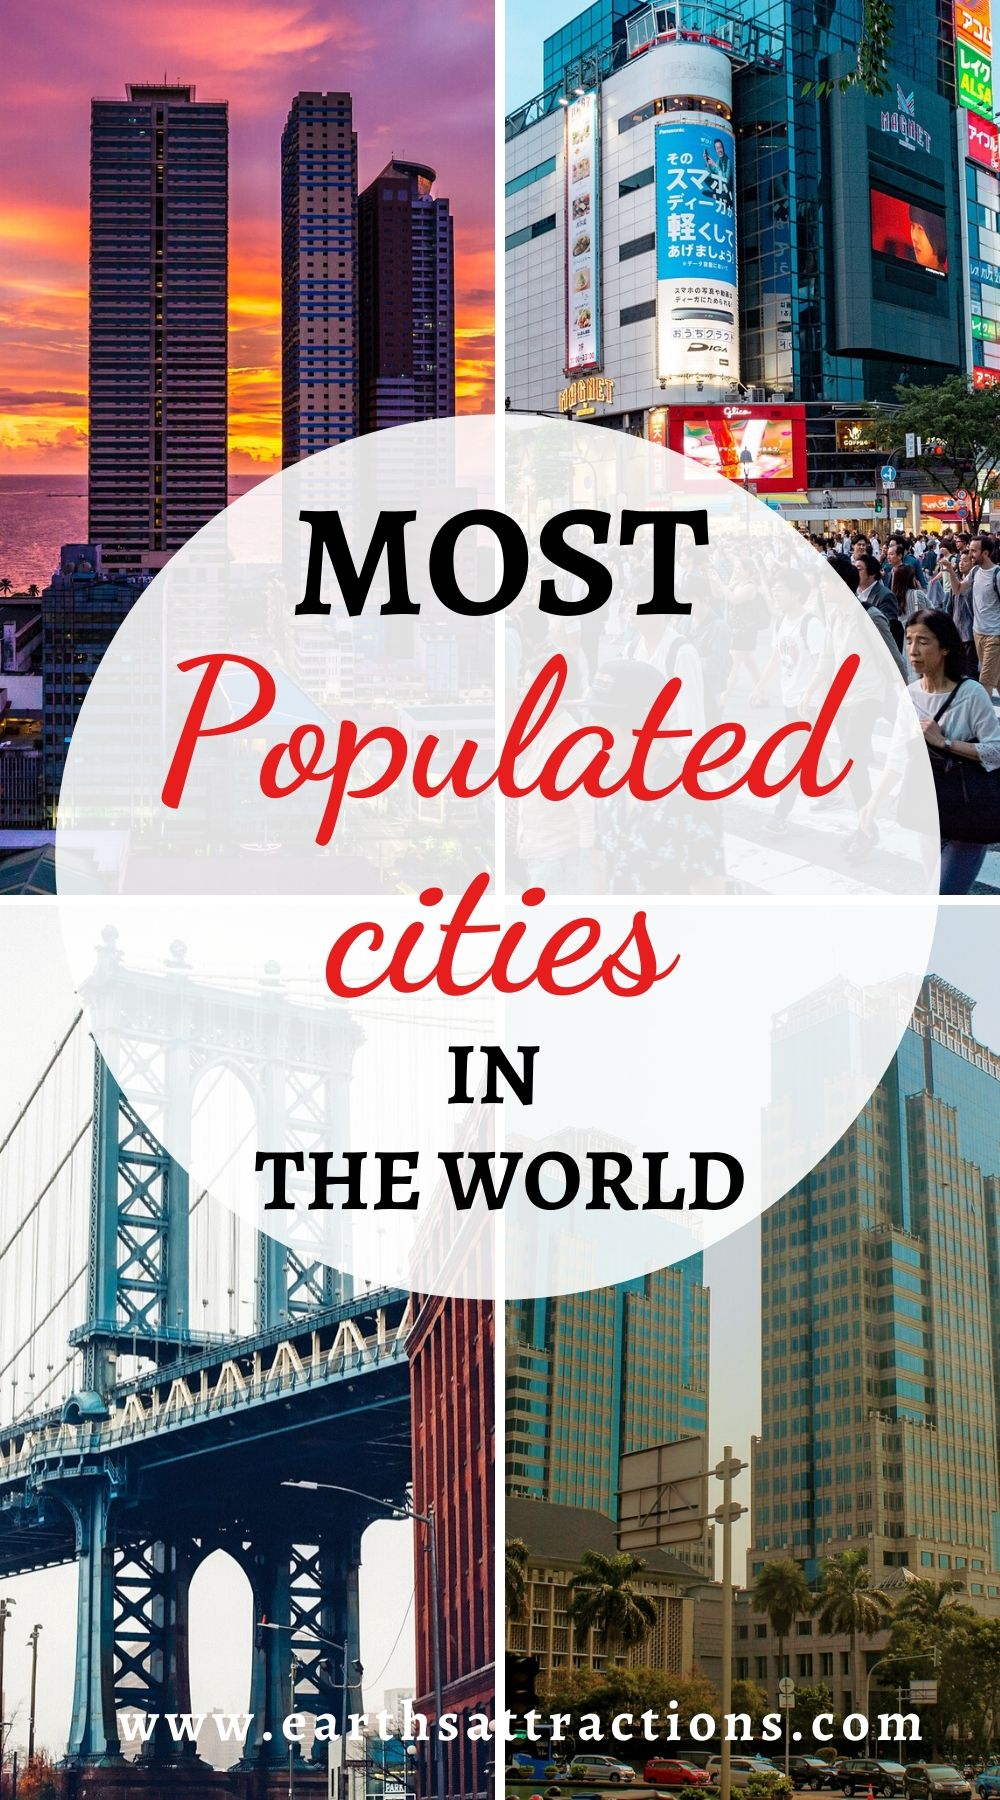 Most populated cities in the world. Discover which are the largest urban areas in the world right now! Read the article and find out the largest cities in the world - prepare to be surprized. #top #topcities #largestcities #populatedcities